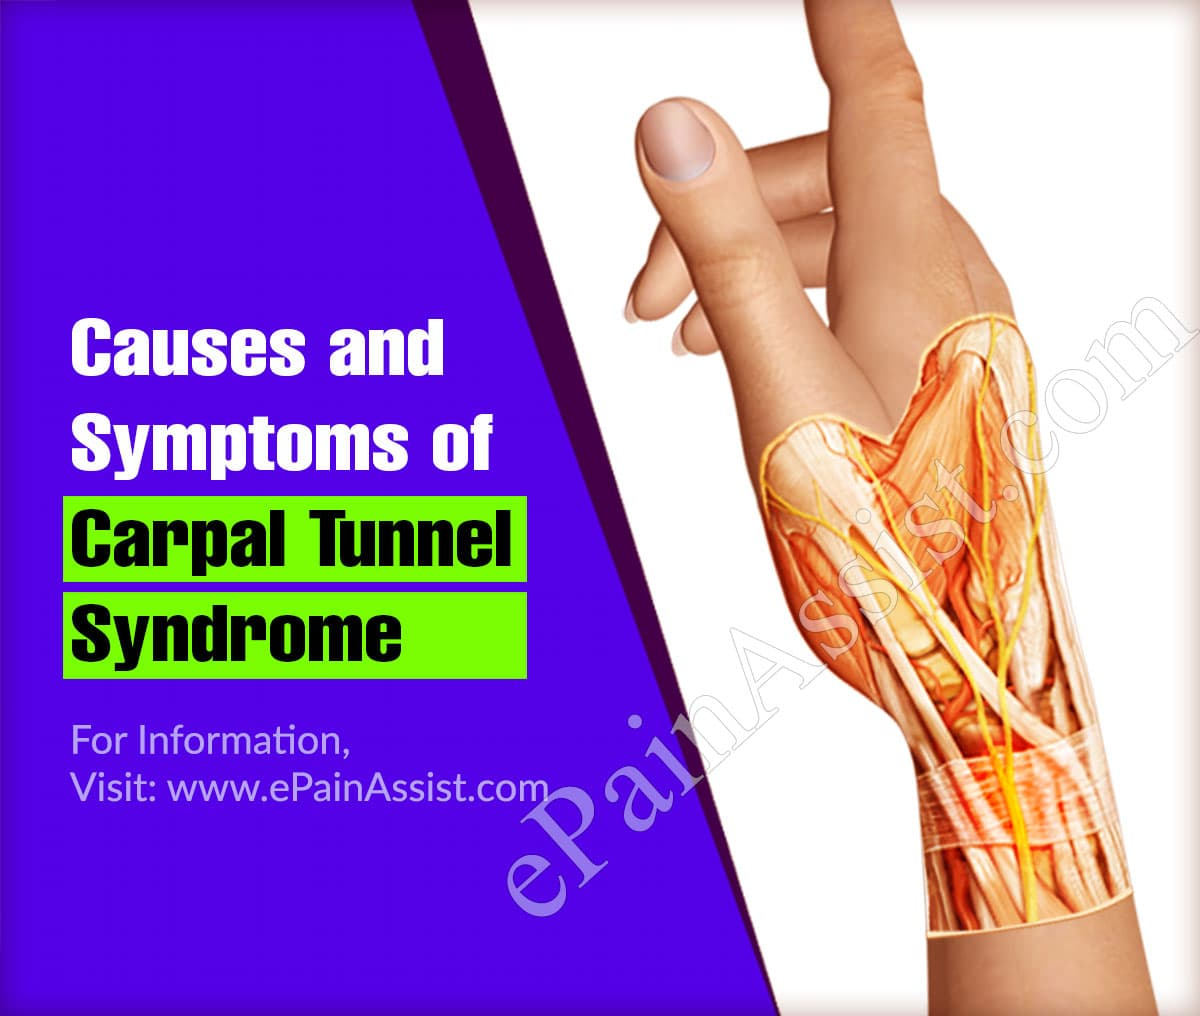 Causes and Symptoms Associated with Carpal Tunnel Syndrome